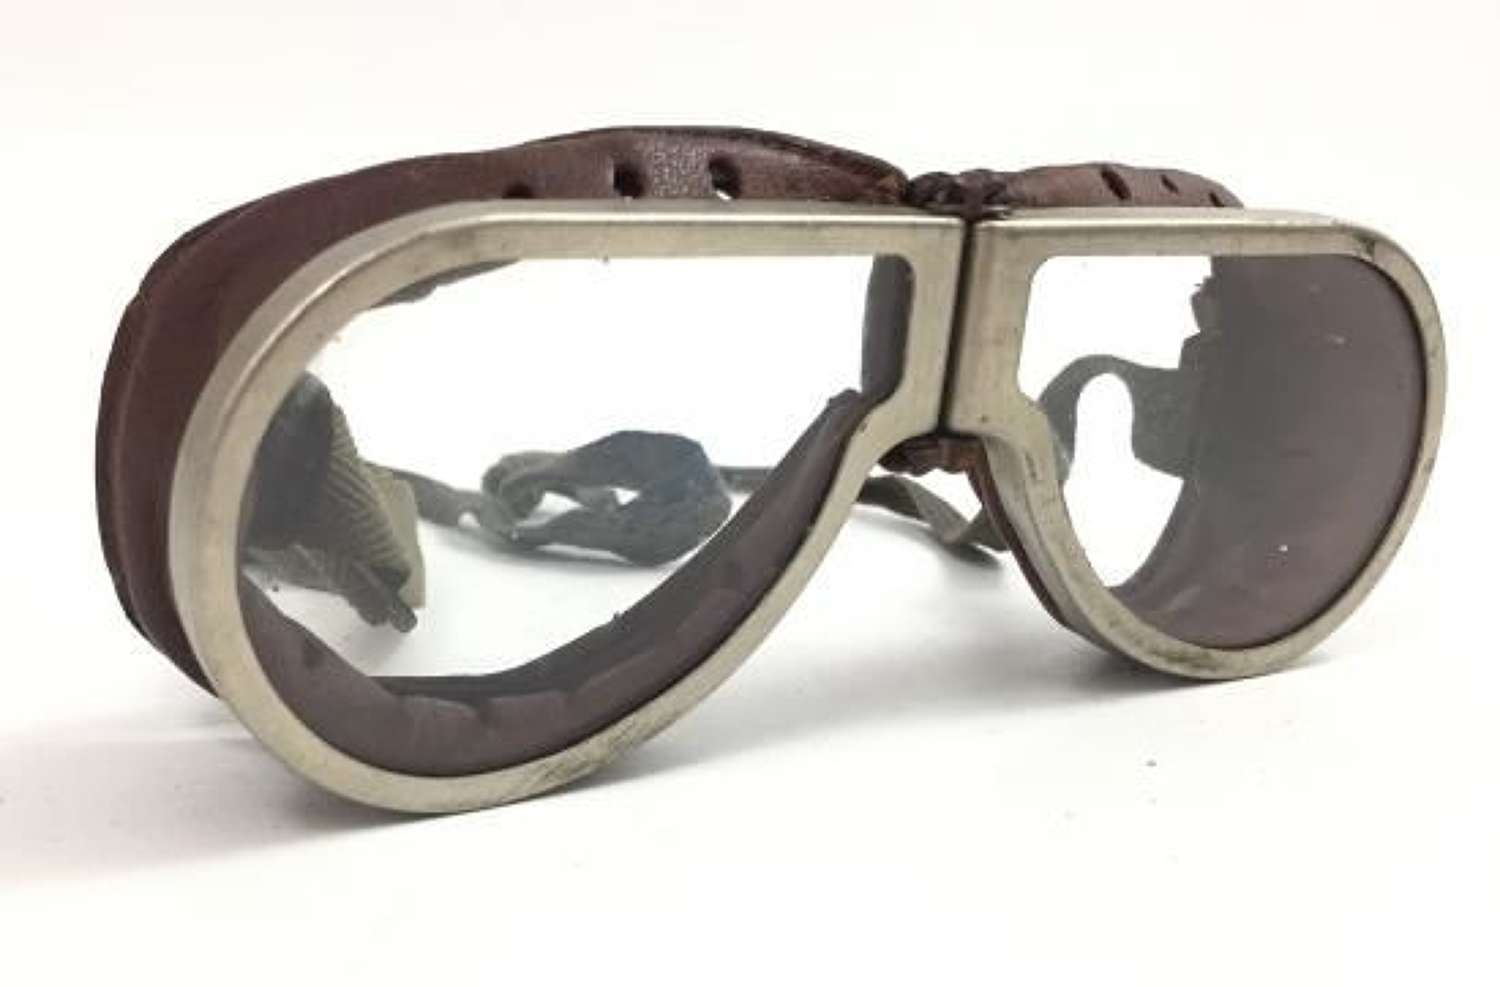 Original WW2 British Army MT Goggles - Clear Lenses